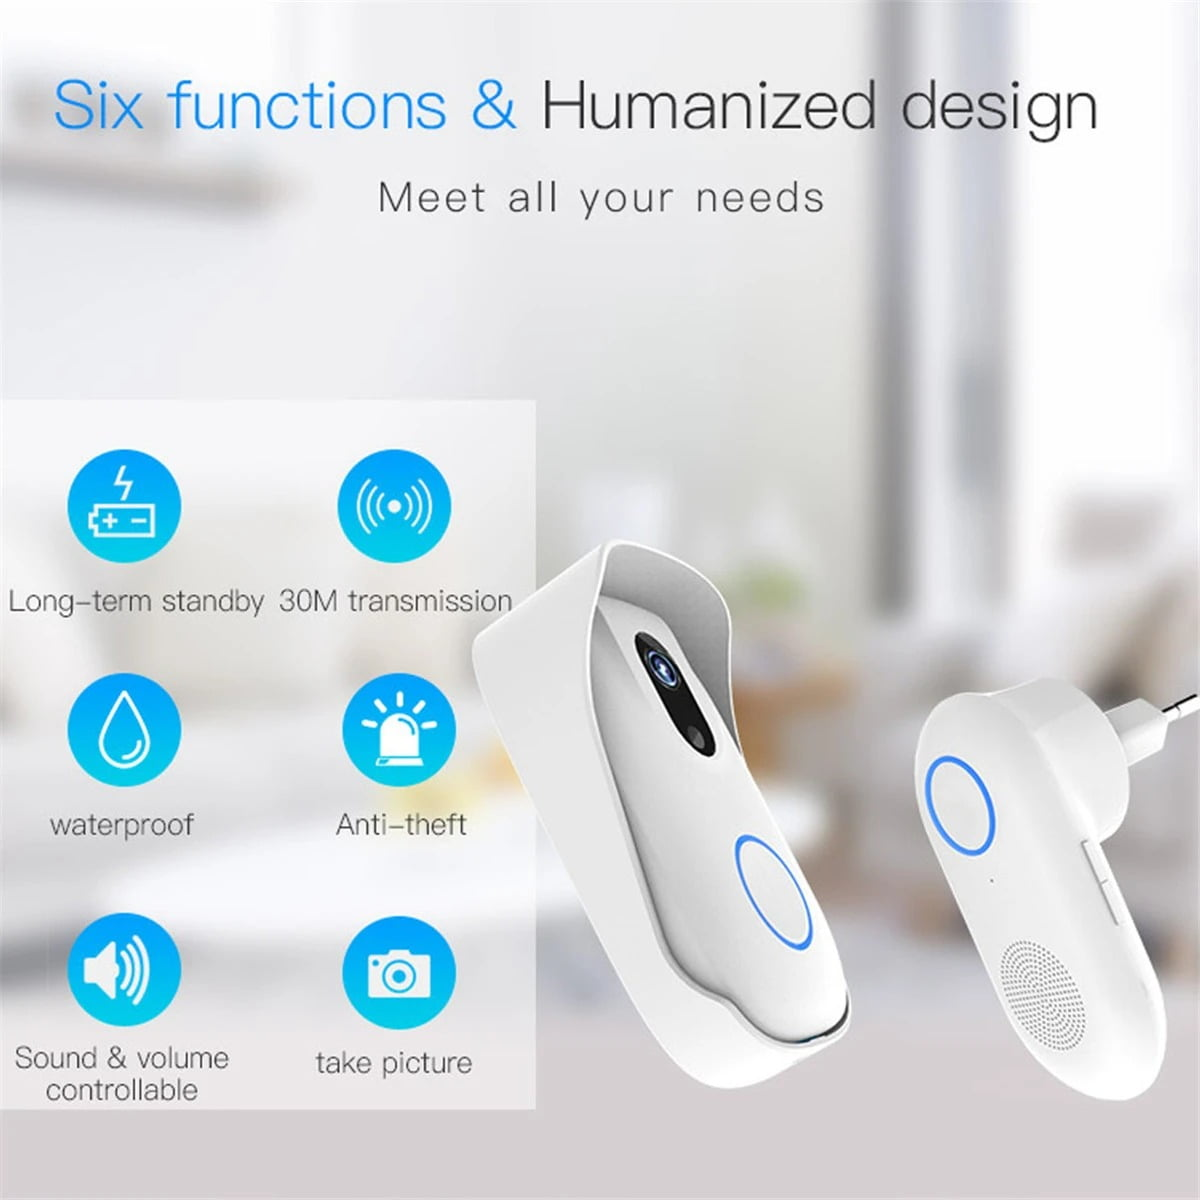 SH02 Smart Wireless Doorbell Lens Video HD Security Camera Night Vision App Control (13)